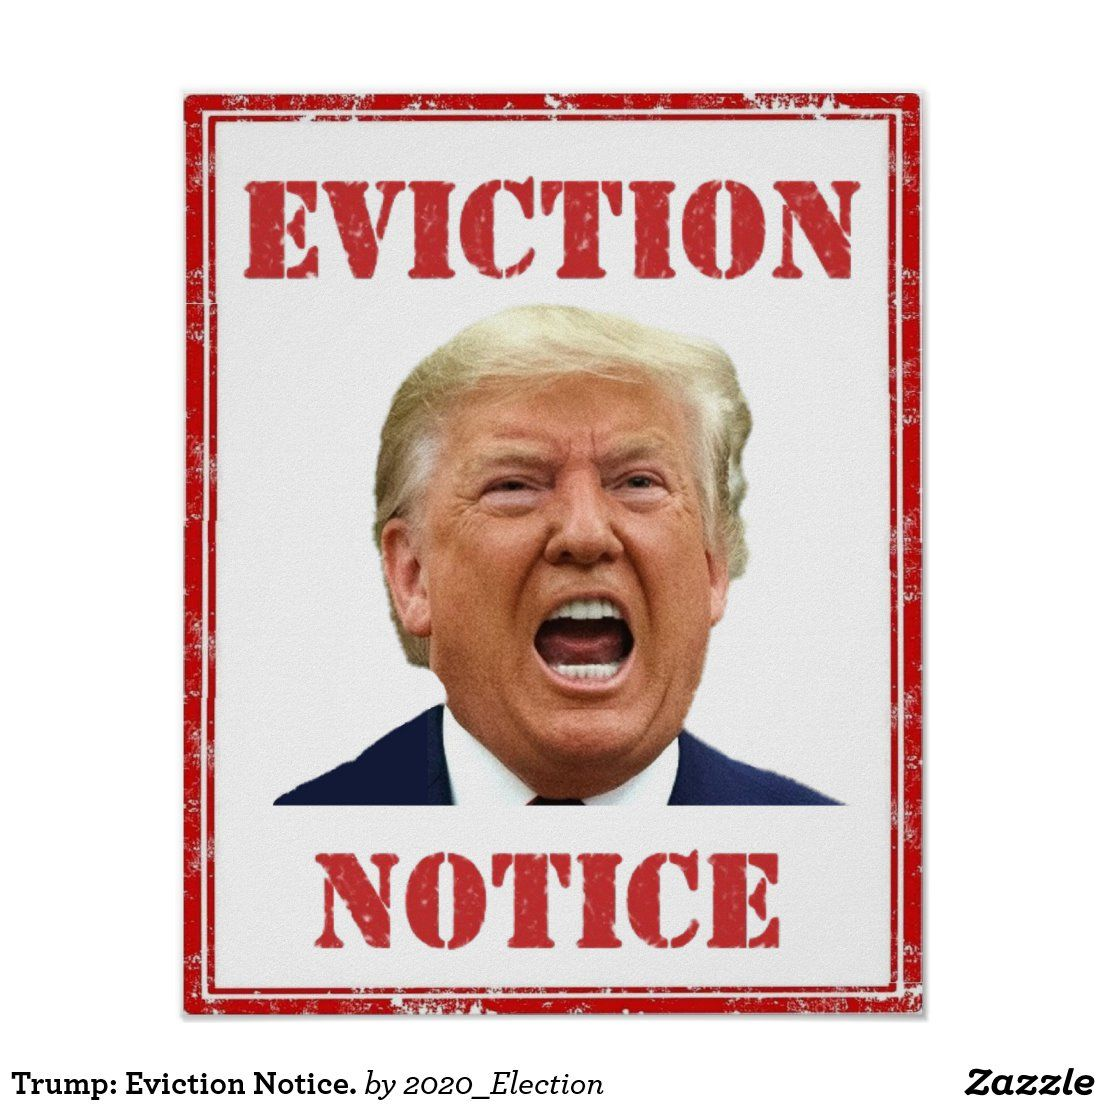 Trump: Eviction Notice. Poster   Zazzle.com   Custom posters, How  big is baby, Eviction notice